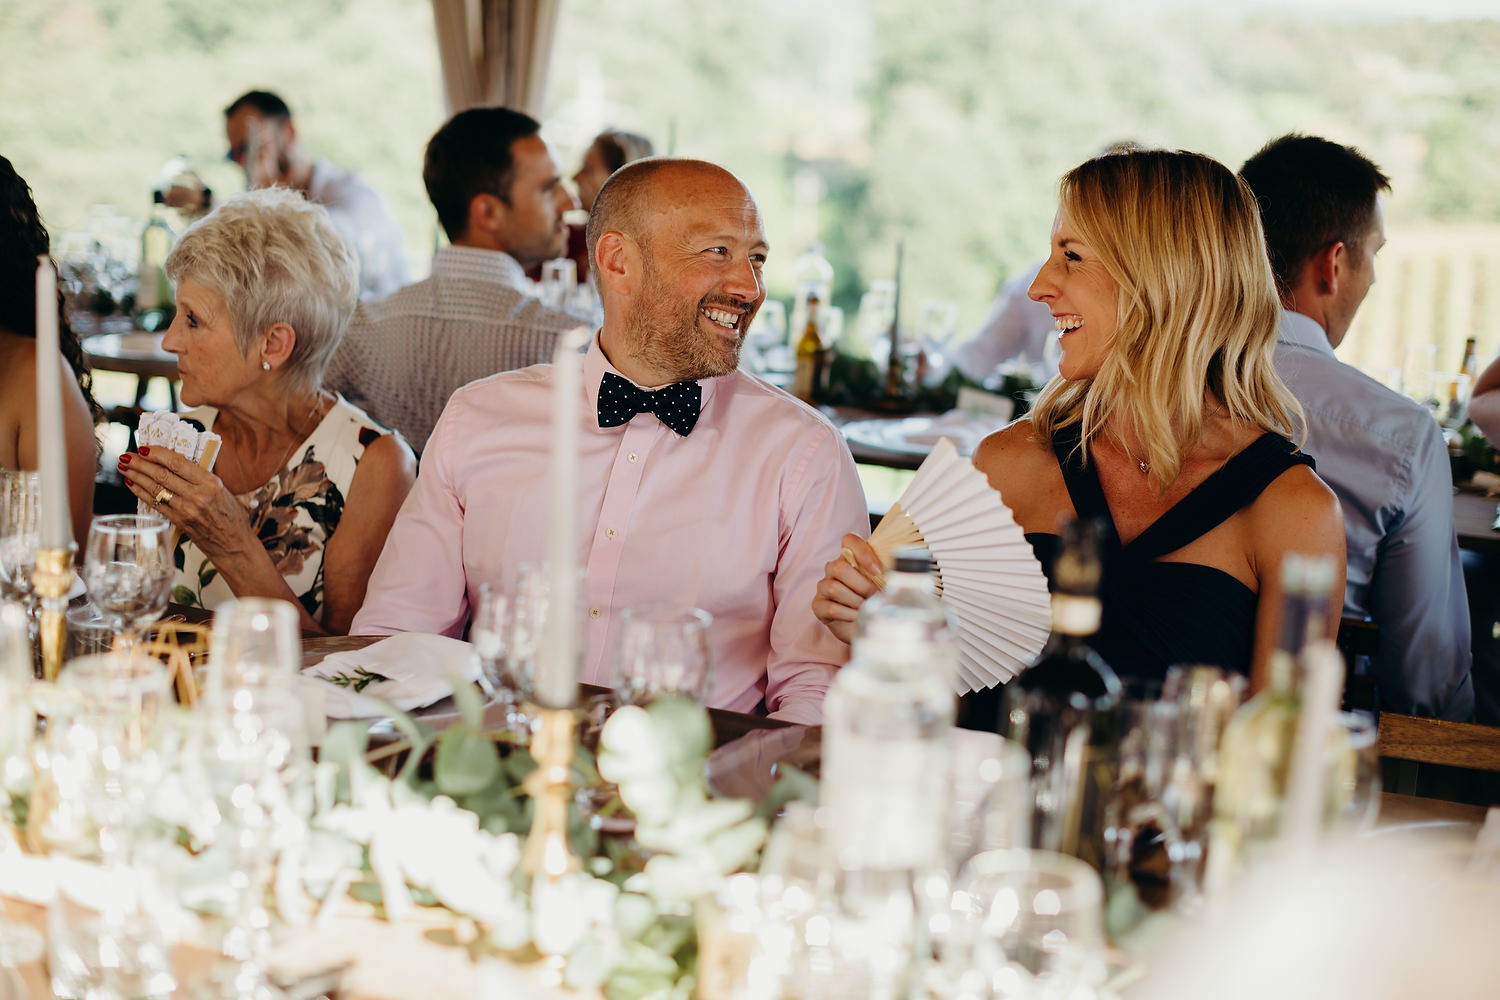 guests laughing before the wedding feast